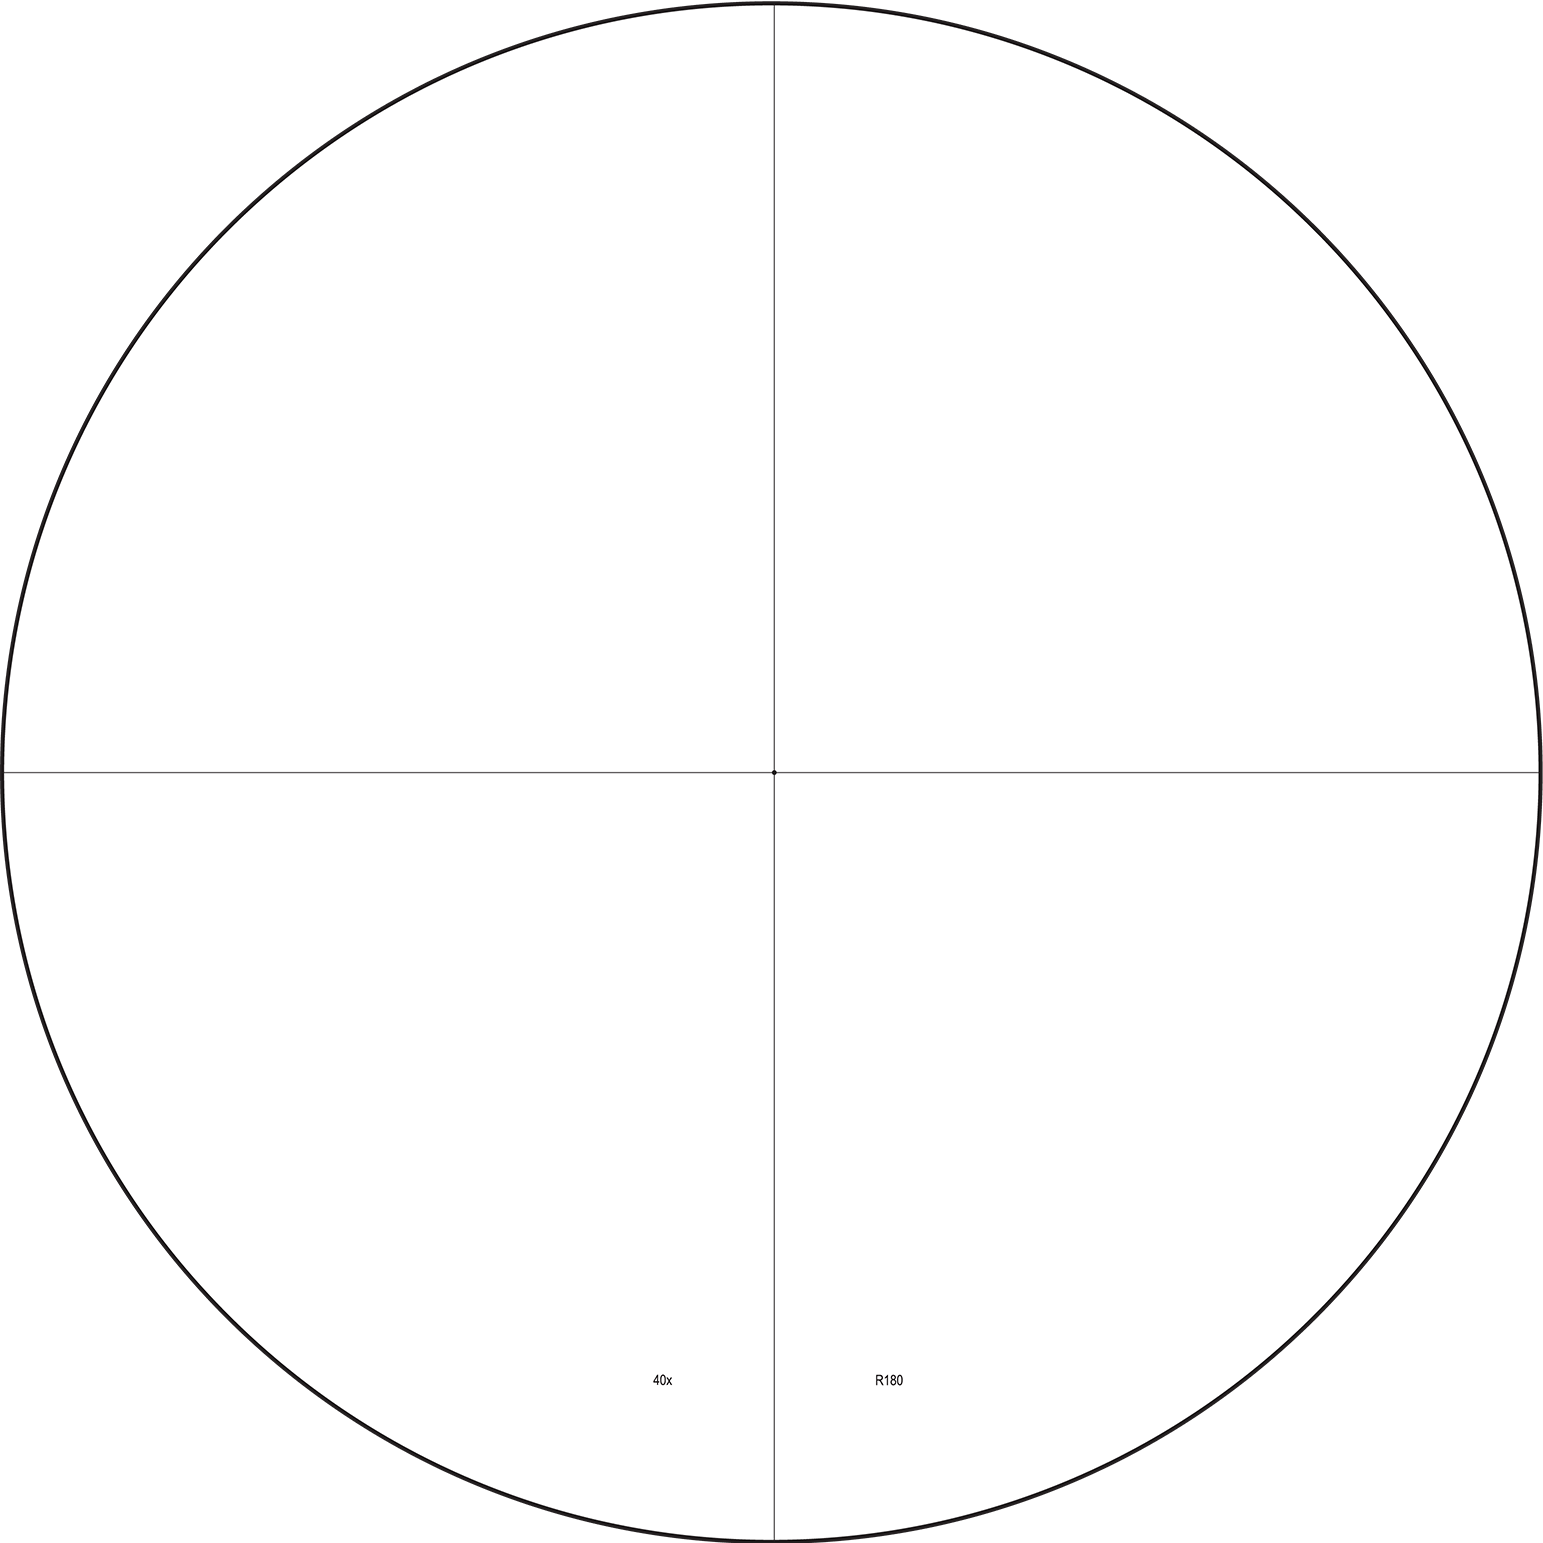 Reticle_Images - CTR-2